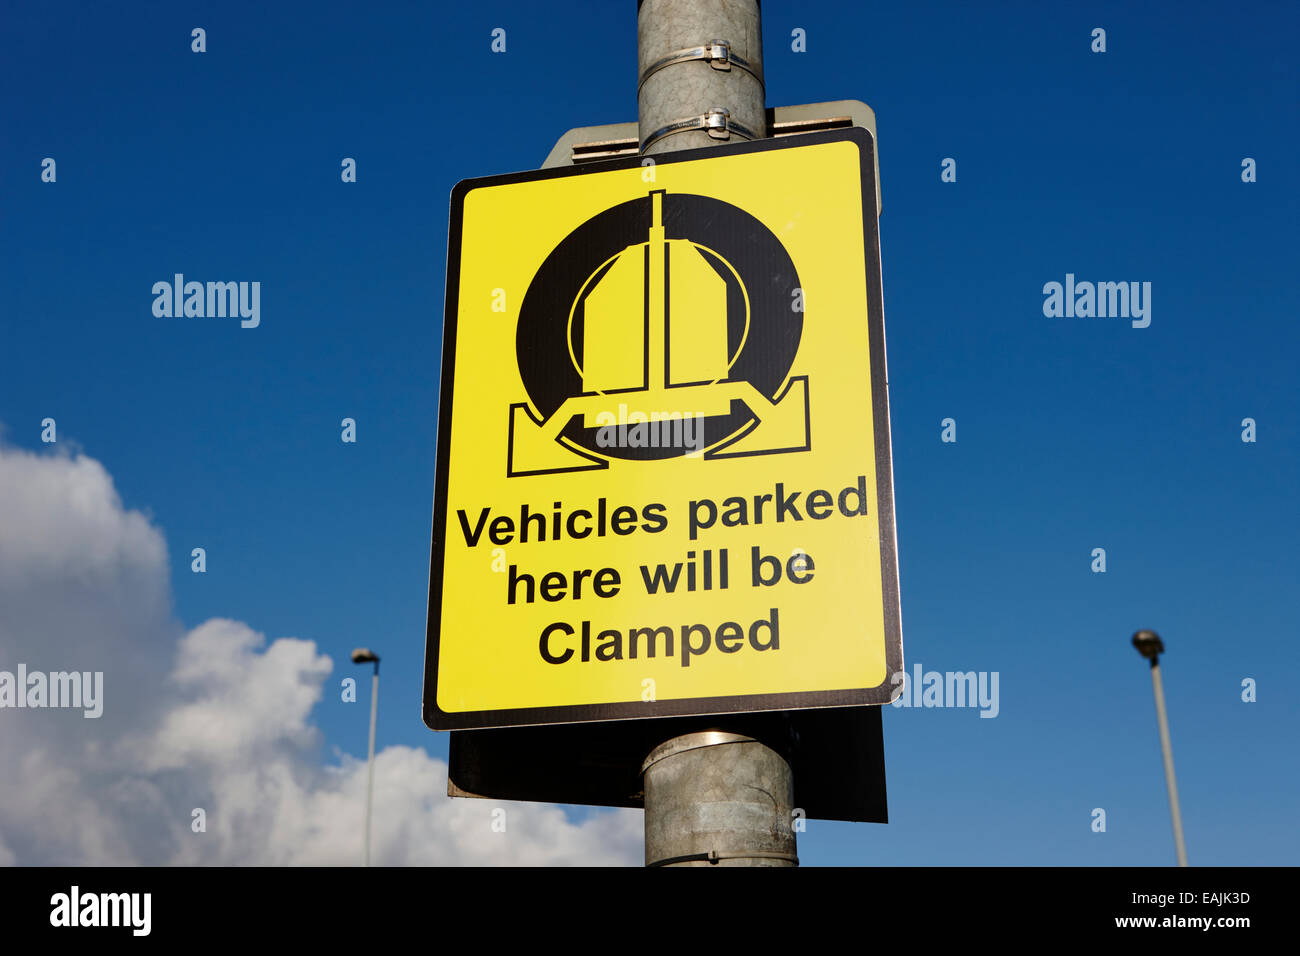 vehicles parked here will be clamped signpost Belfast Northern Ireland - Stock Image